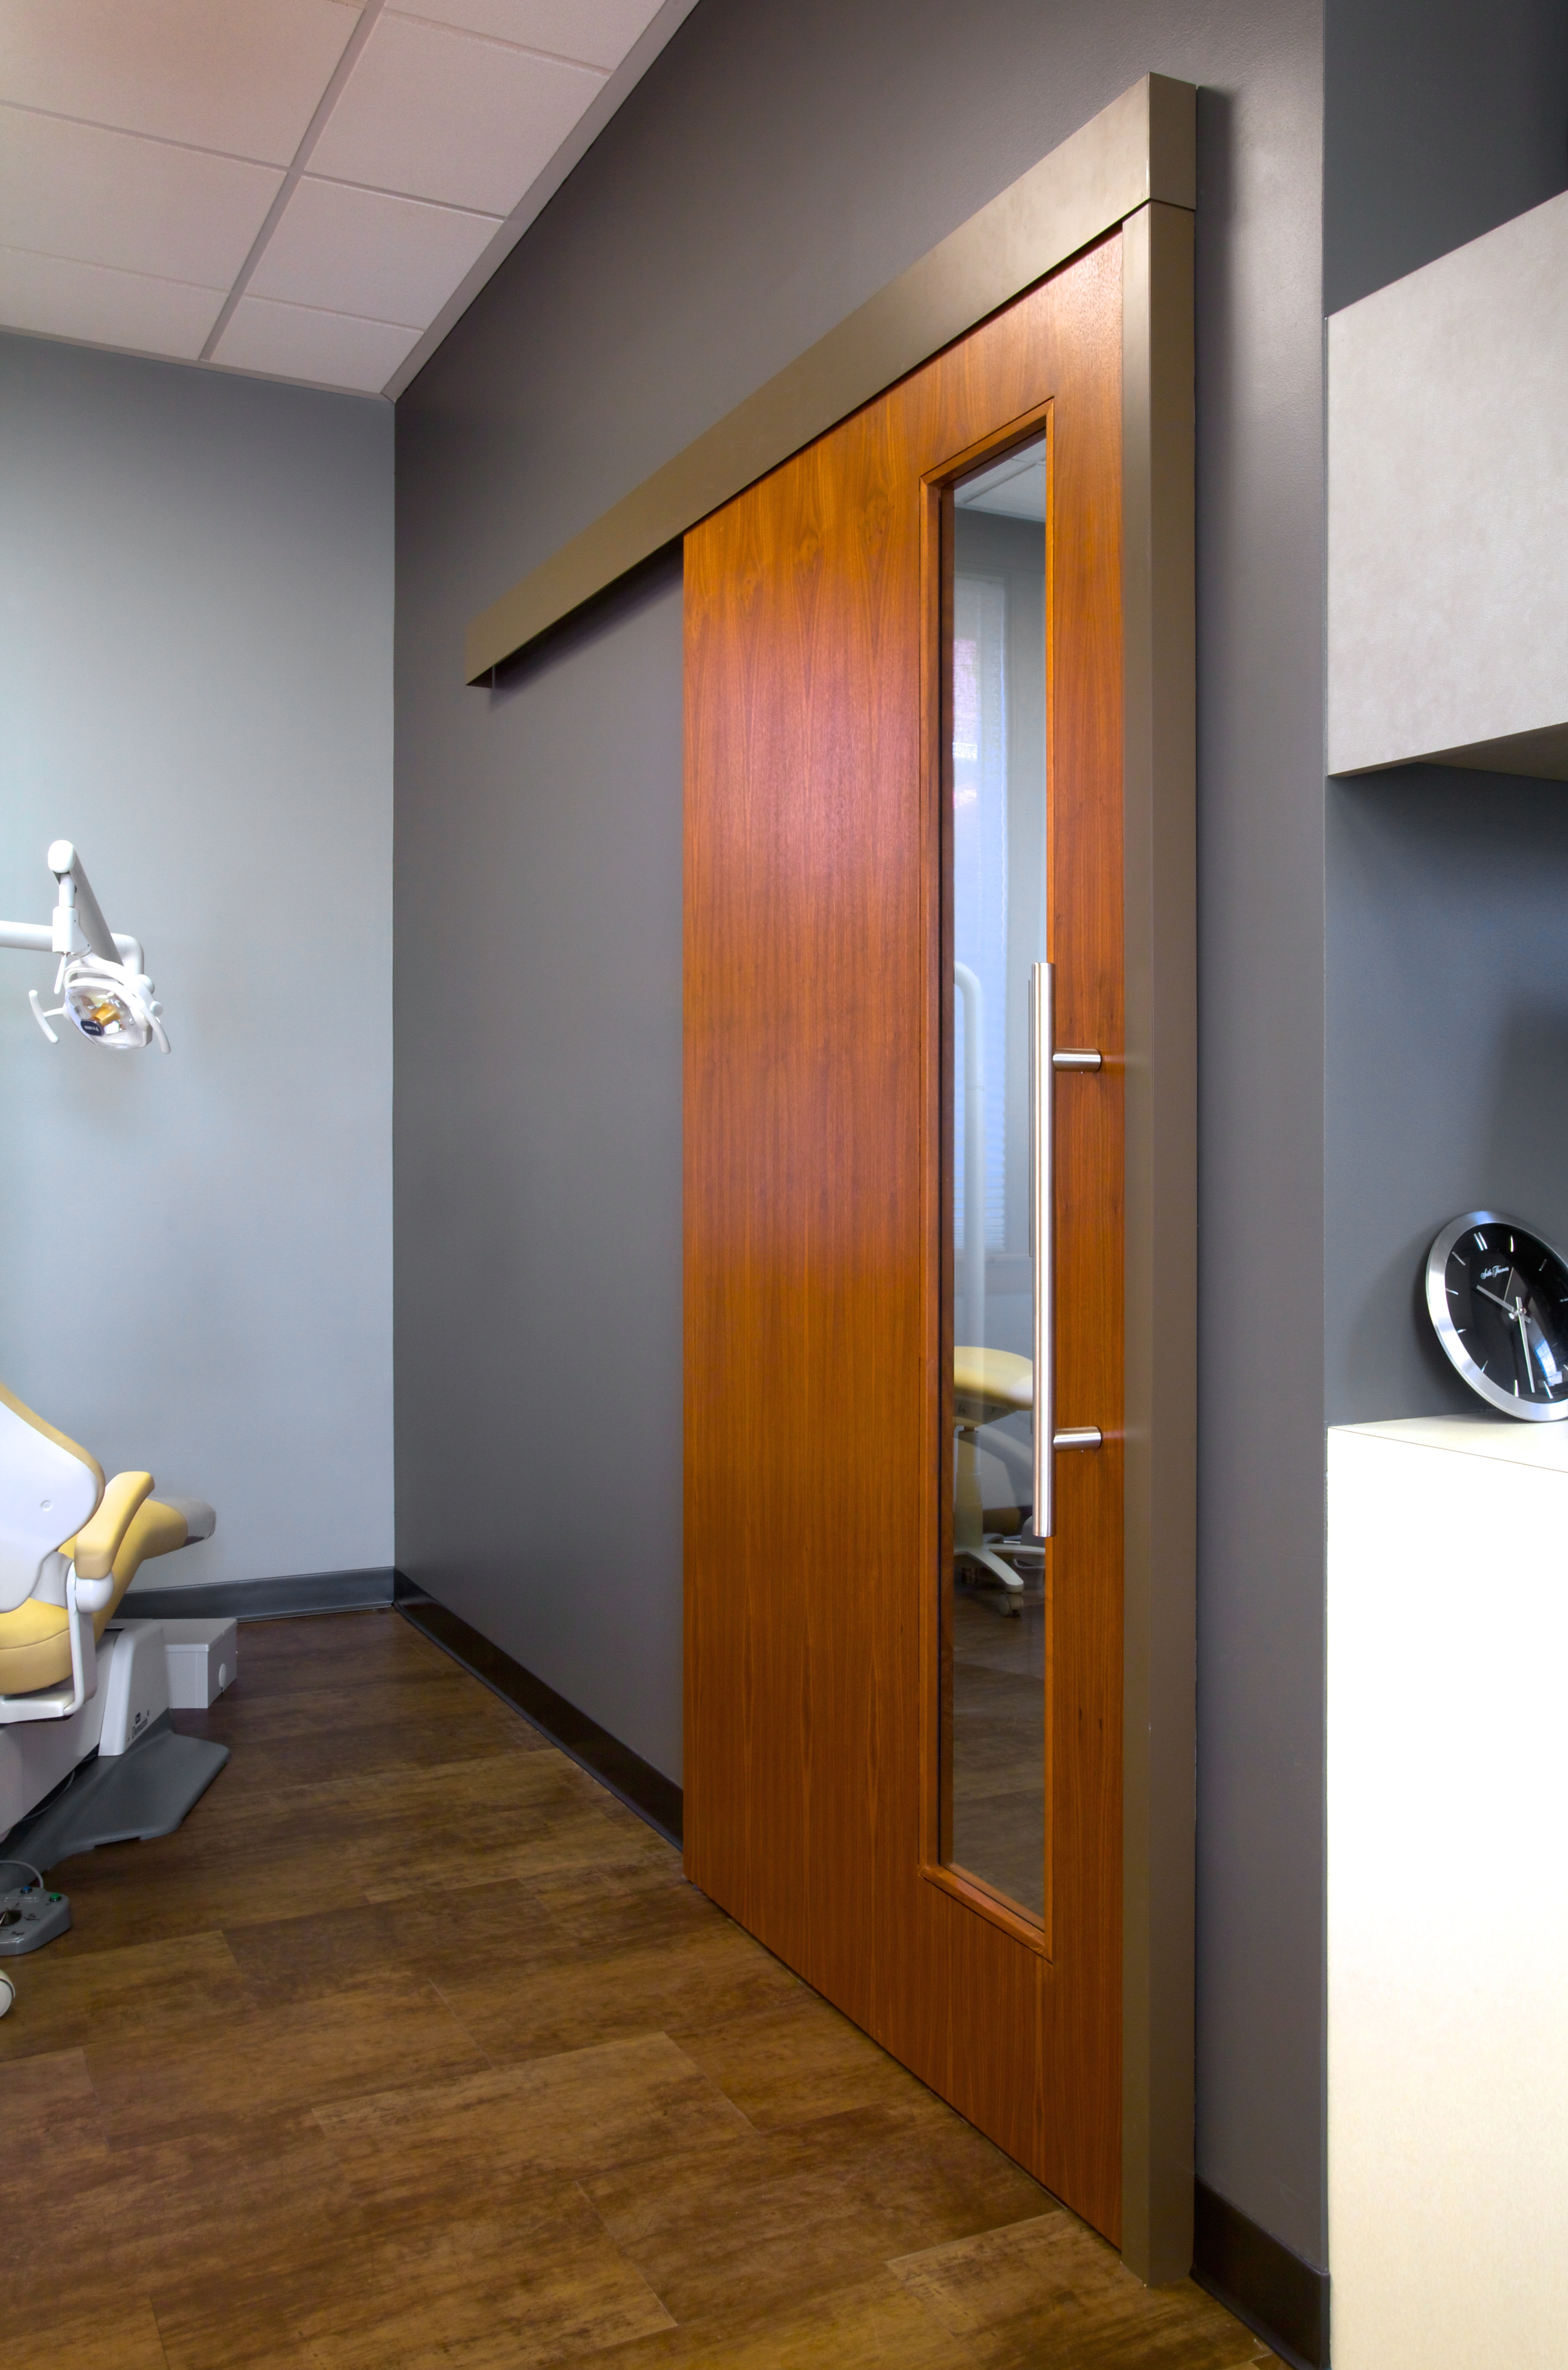 & Aurora Barn Doors - Exam Room Sliding Doors | LarsonO\u0027Brien Pressroom